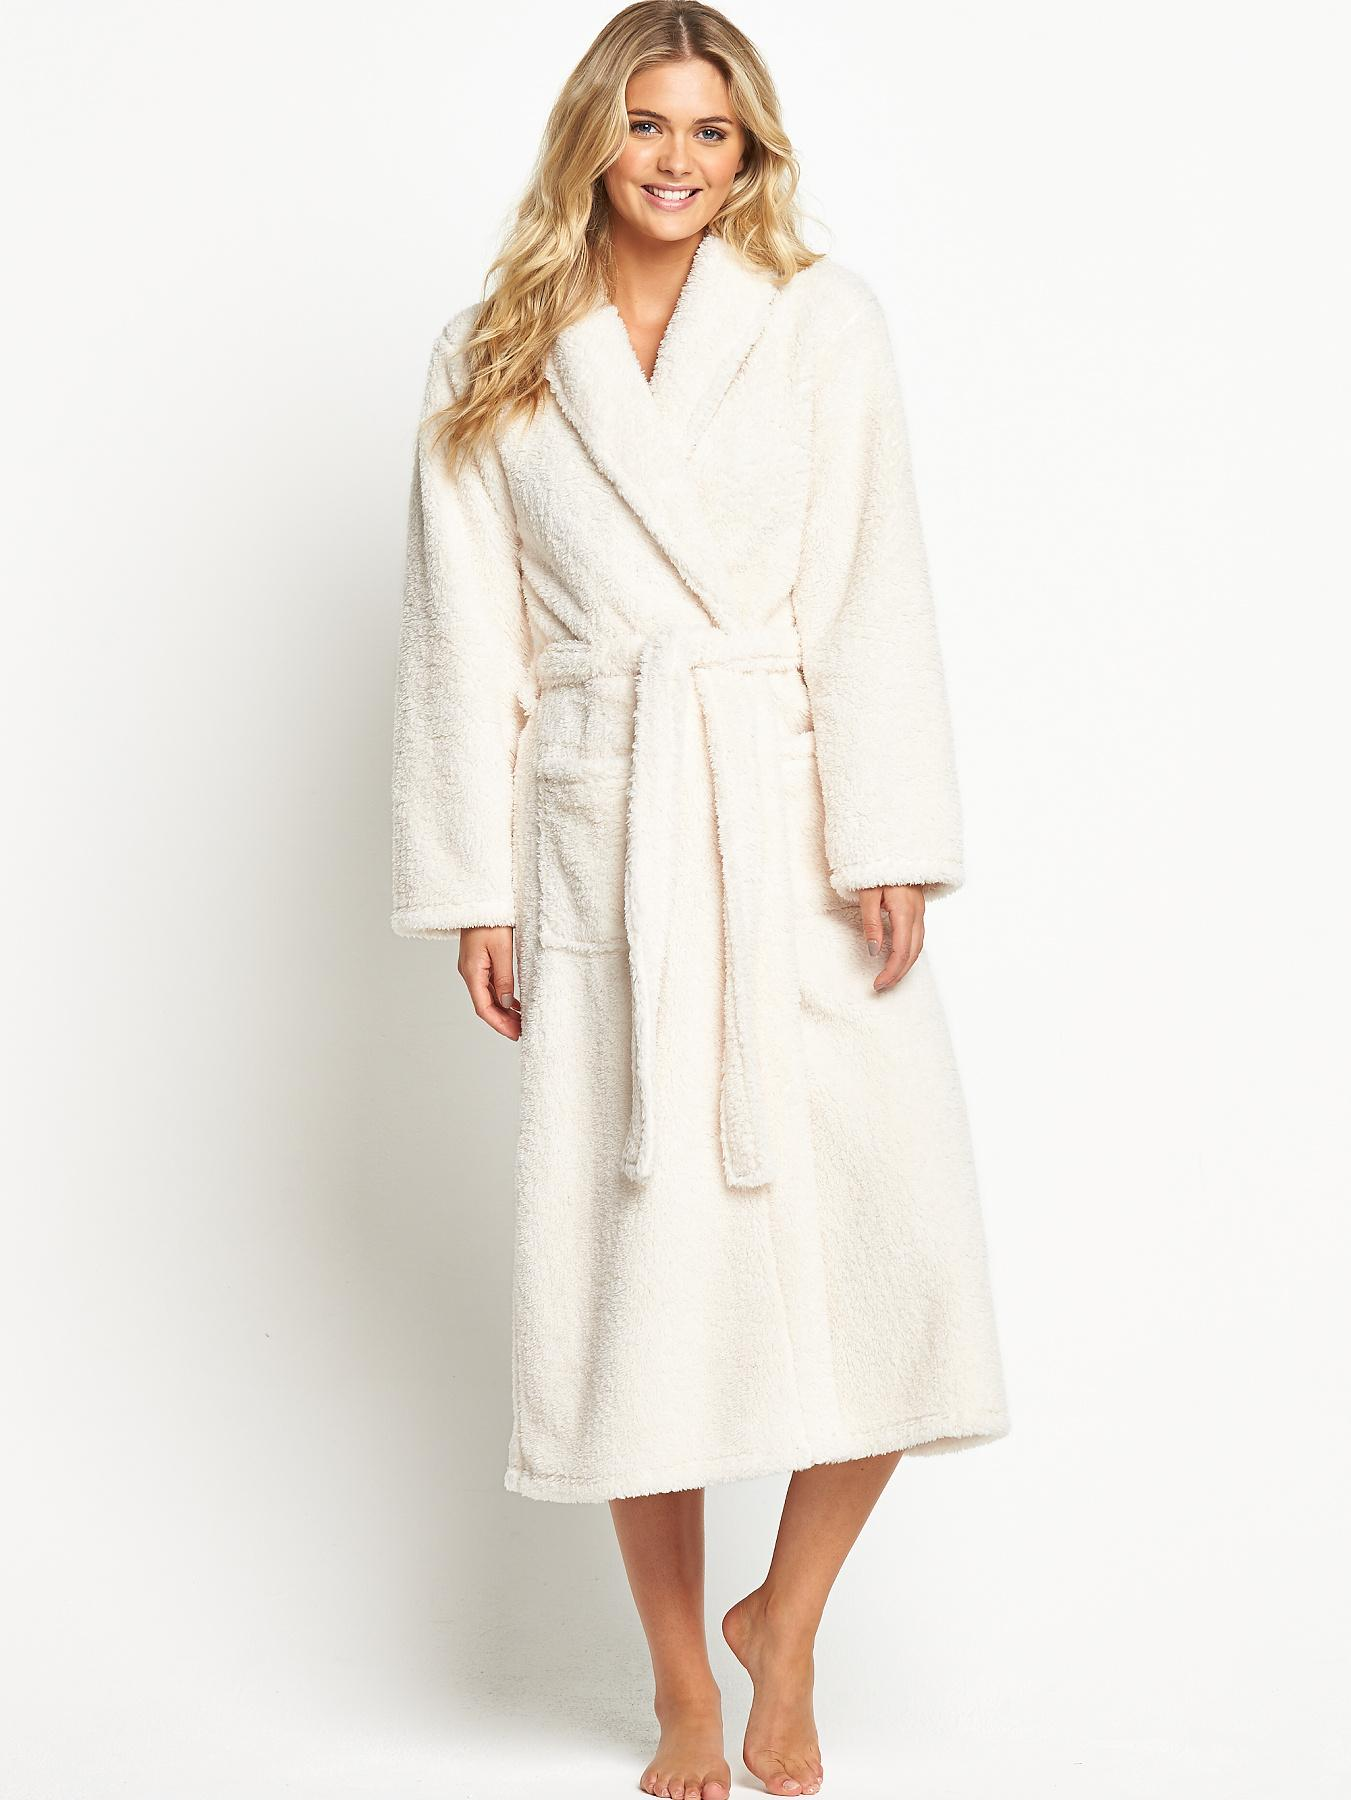 Sorbet Super Soft Robe - Cream, Cream